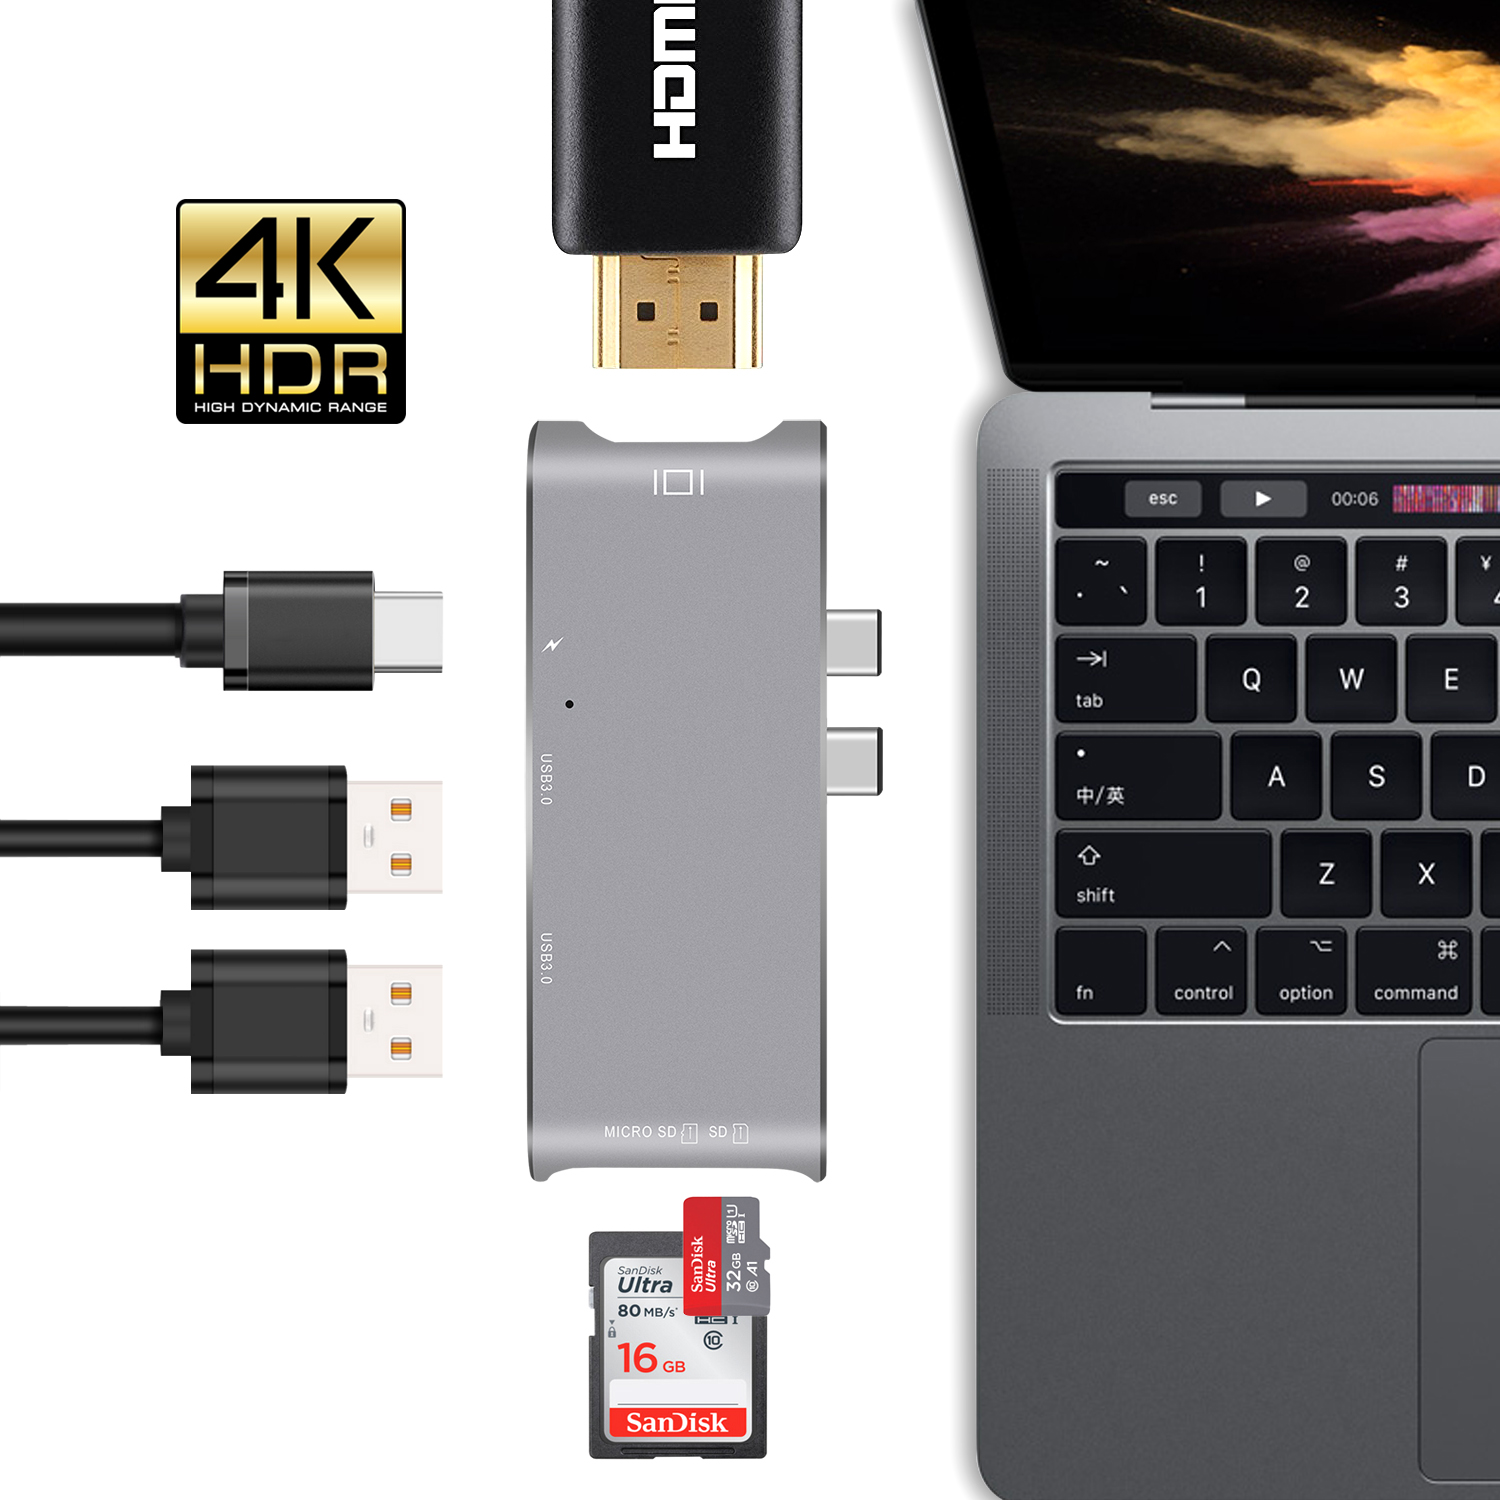 GOOJODOQ USB C HUB HDMI 4k USB-C HDMI Adapter Combo Dock with USB 3.0,SD slot Micro SD Card Reader for MacBook Pro Type C Hub dual usb 3 1 type c hub to card reader usb c hub 3 0 adapter combo with tf sd slot for macbook pro 2016 2017 usb c power deliver